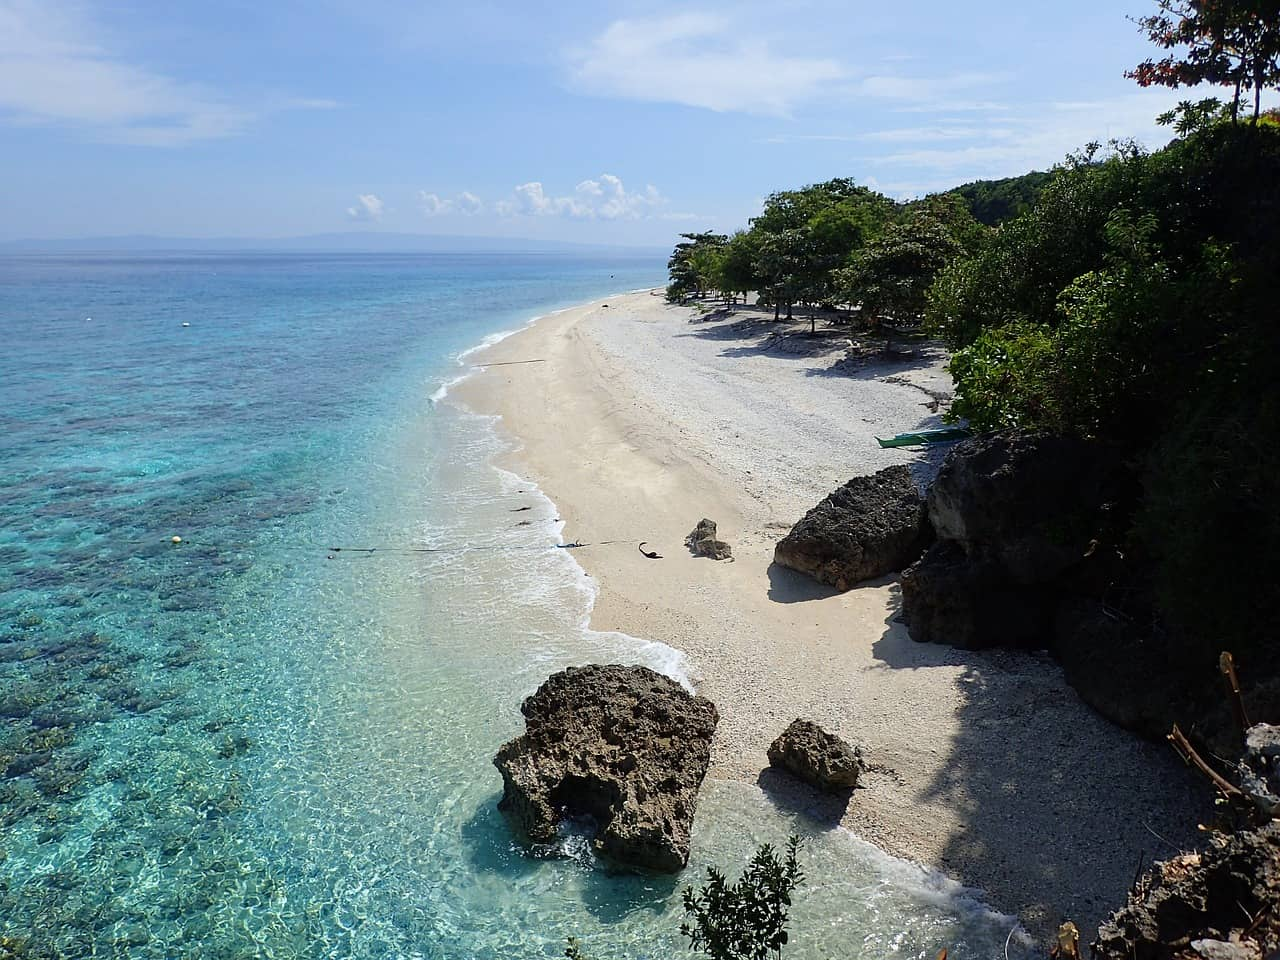 For tired and weary souls, Cebu will definitely allow you to rediscover yourself and your drive with breathtaking waters and stunning marine life. Best tour and activities in Cebu won't be complete without a visit to Nalusuan Island.